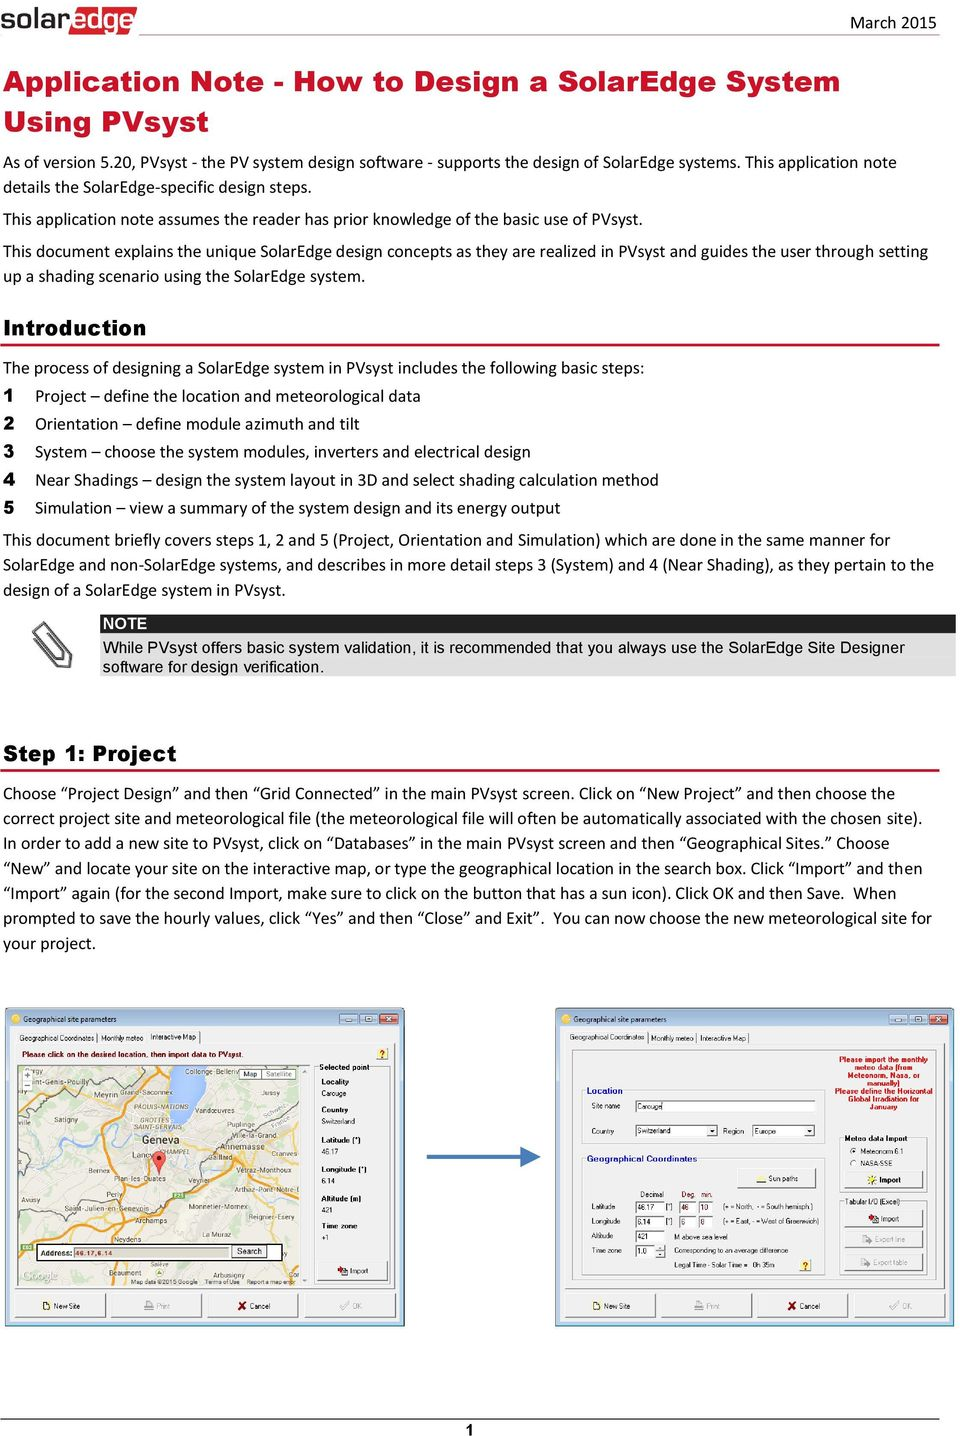 Application Note - How to Design a SolarEdge System Using